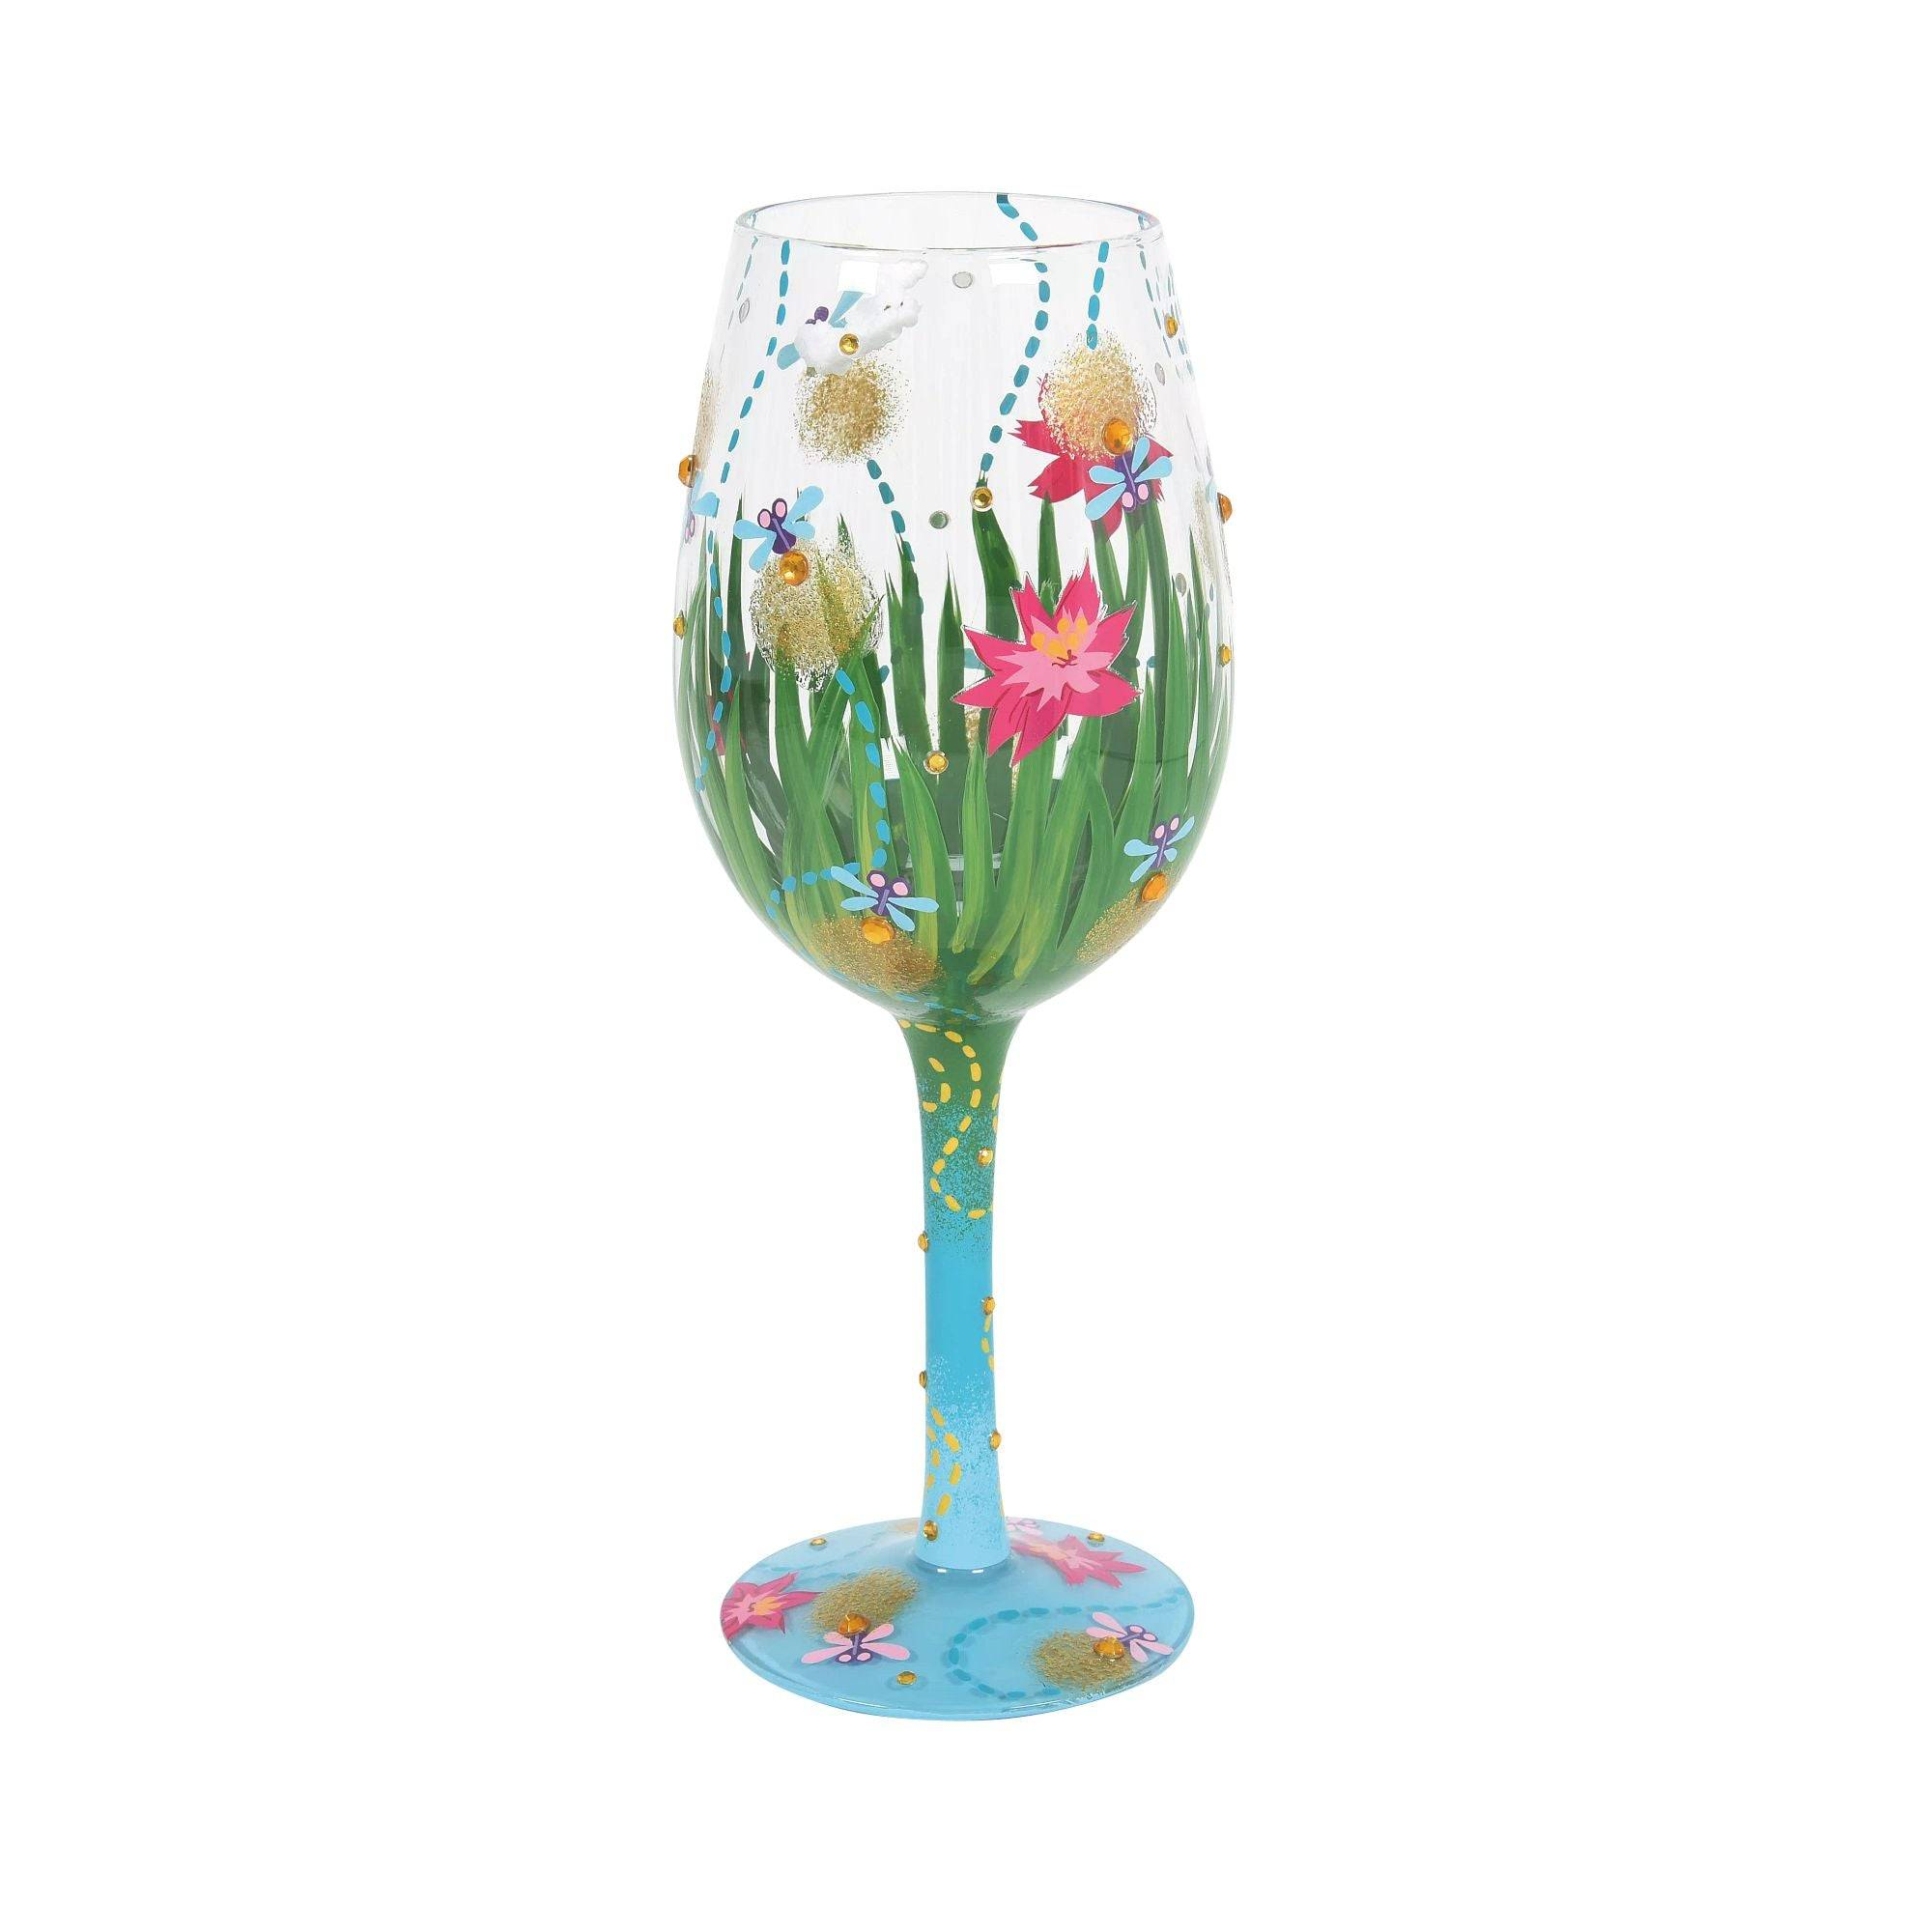 Designs by Lolita Firefly Hand-Painted Wine Glass, 15 oz.